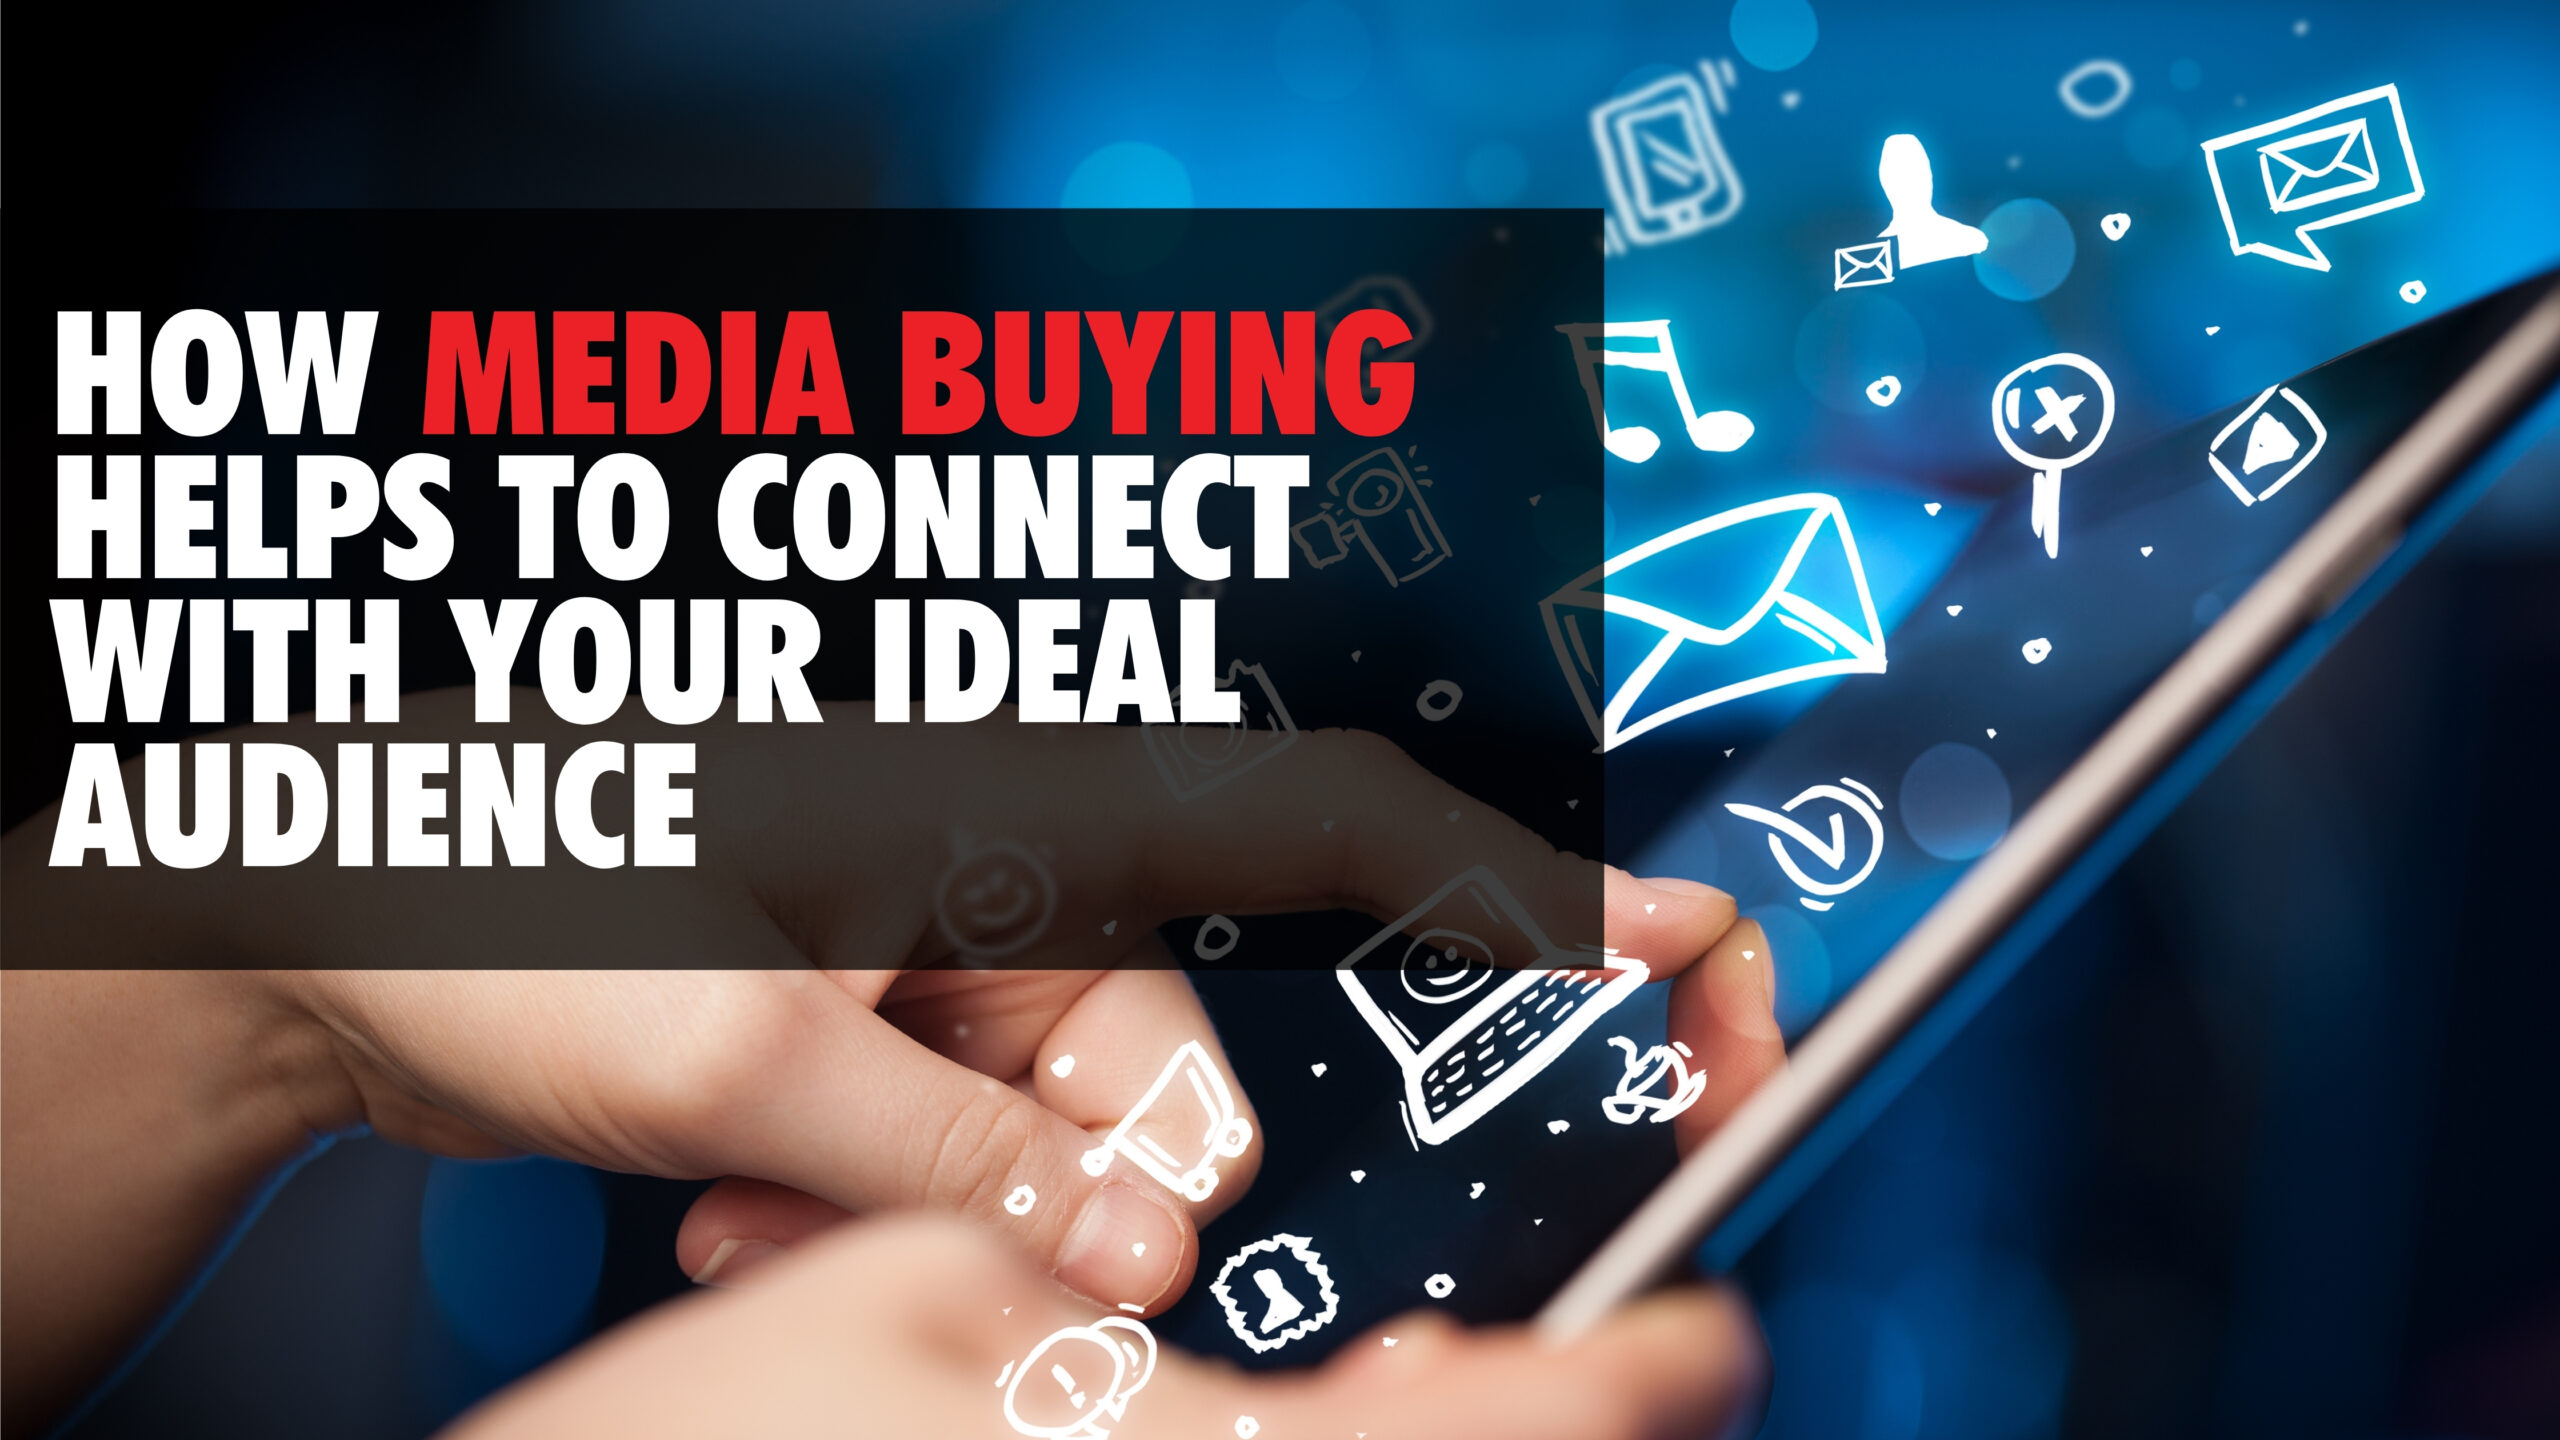 How Media Buying Helps to Connect with Your Ideal Audience